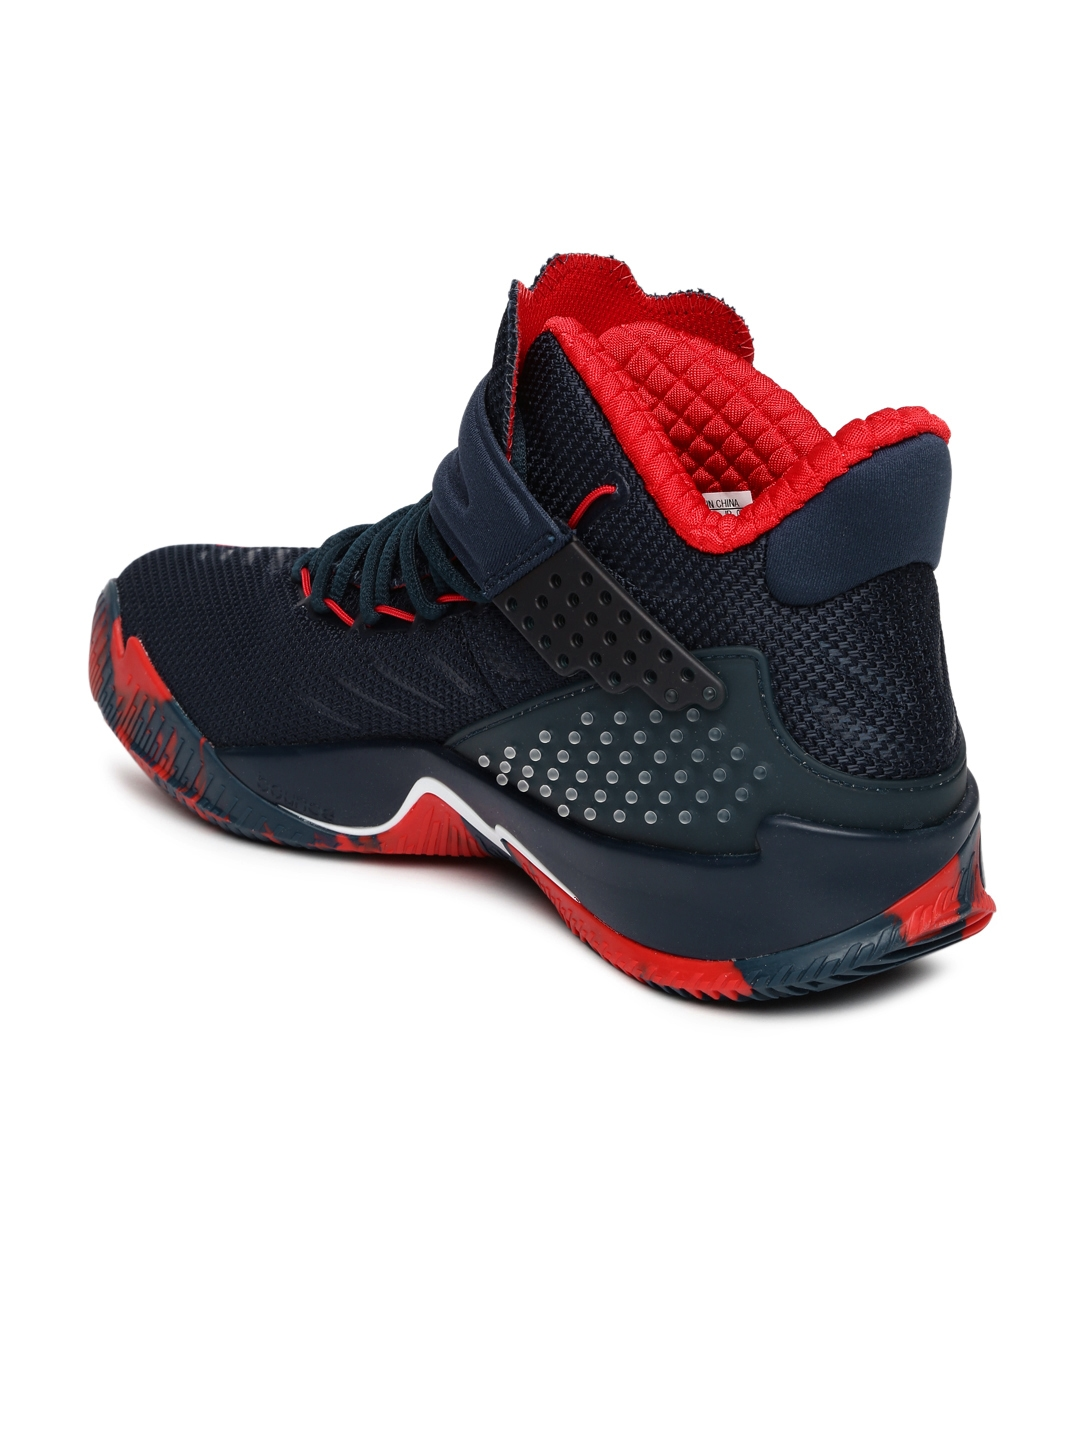 official photos b25f7 b8b4c ... sale adidas men navy blue ball 365 basketball shoes 225e0 bb3ed